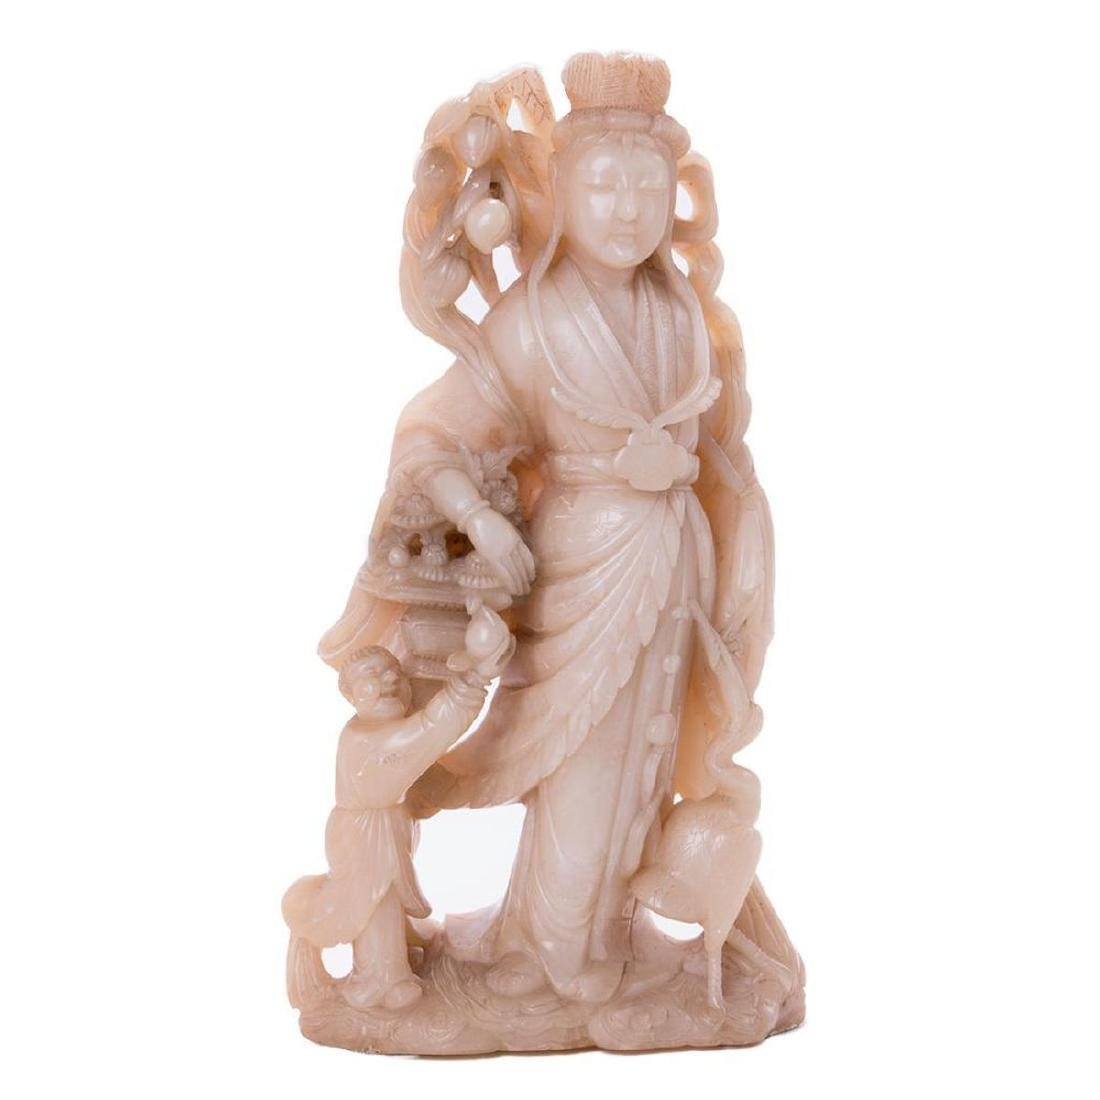 A large Chinese stone carving of a goddess.